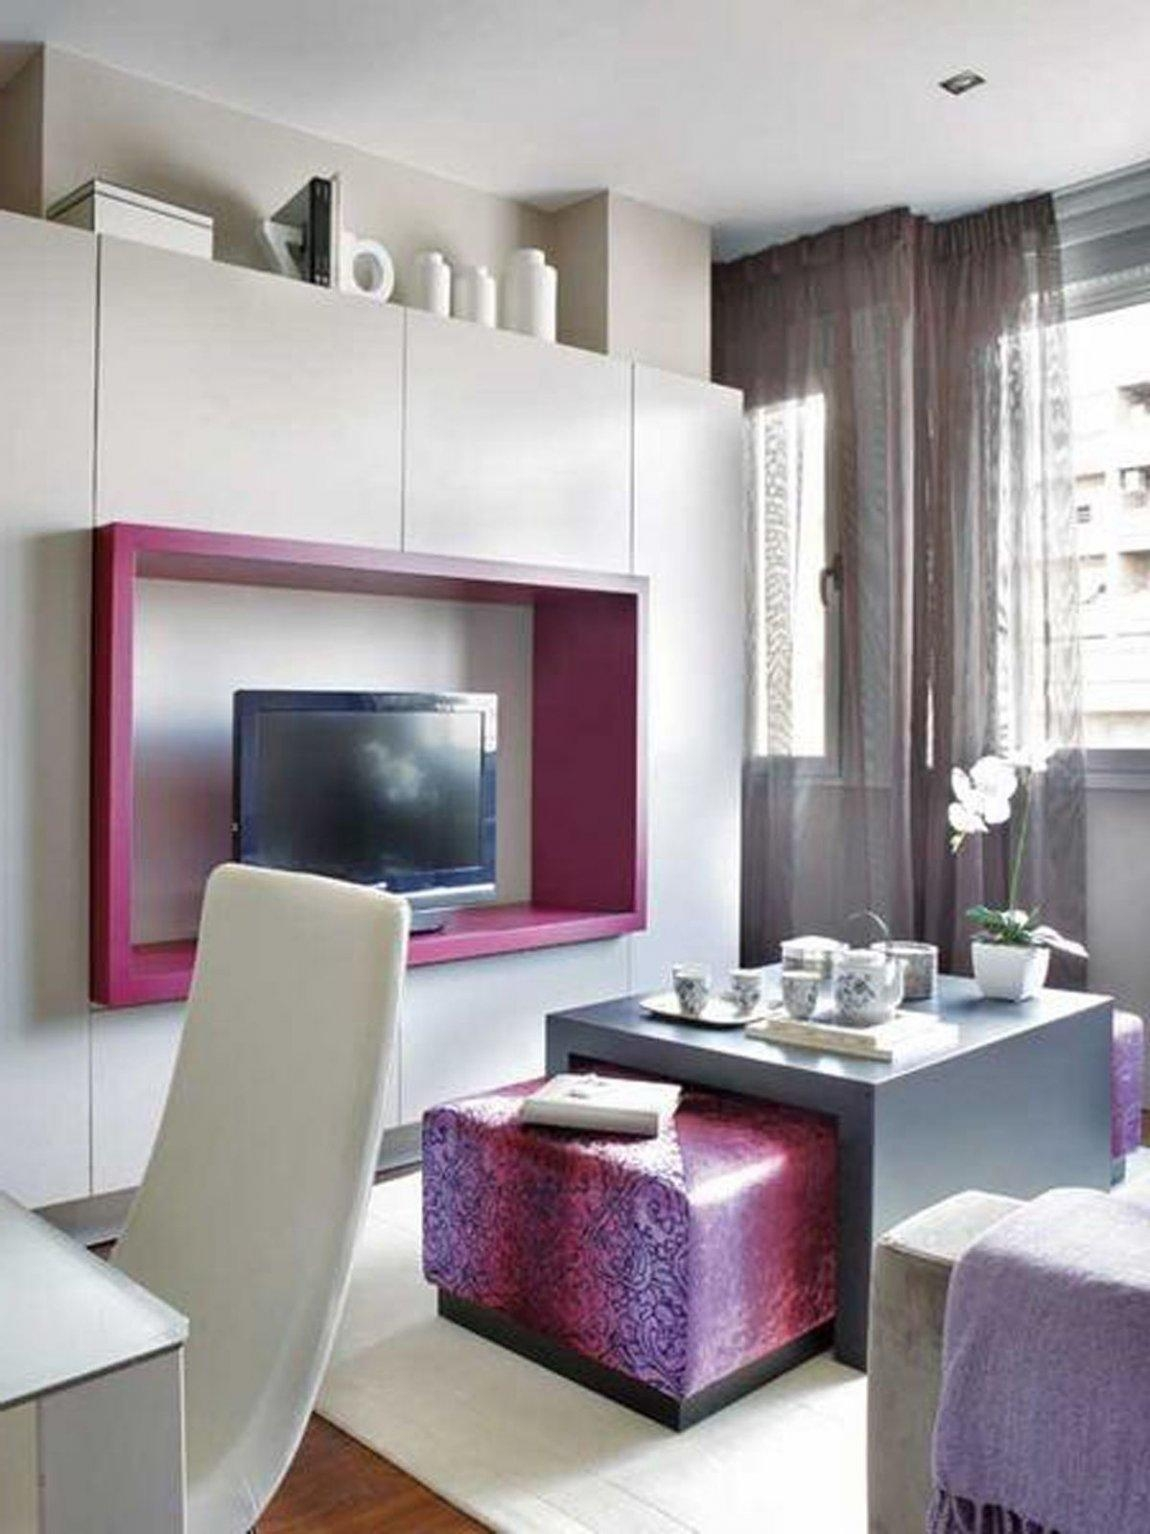 Small Bedroom Sofa Excellent Ideas White Wooden Storage Under Throughout Bedroom Sofas And Chairs (Image 20 of 20)